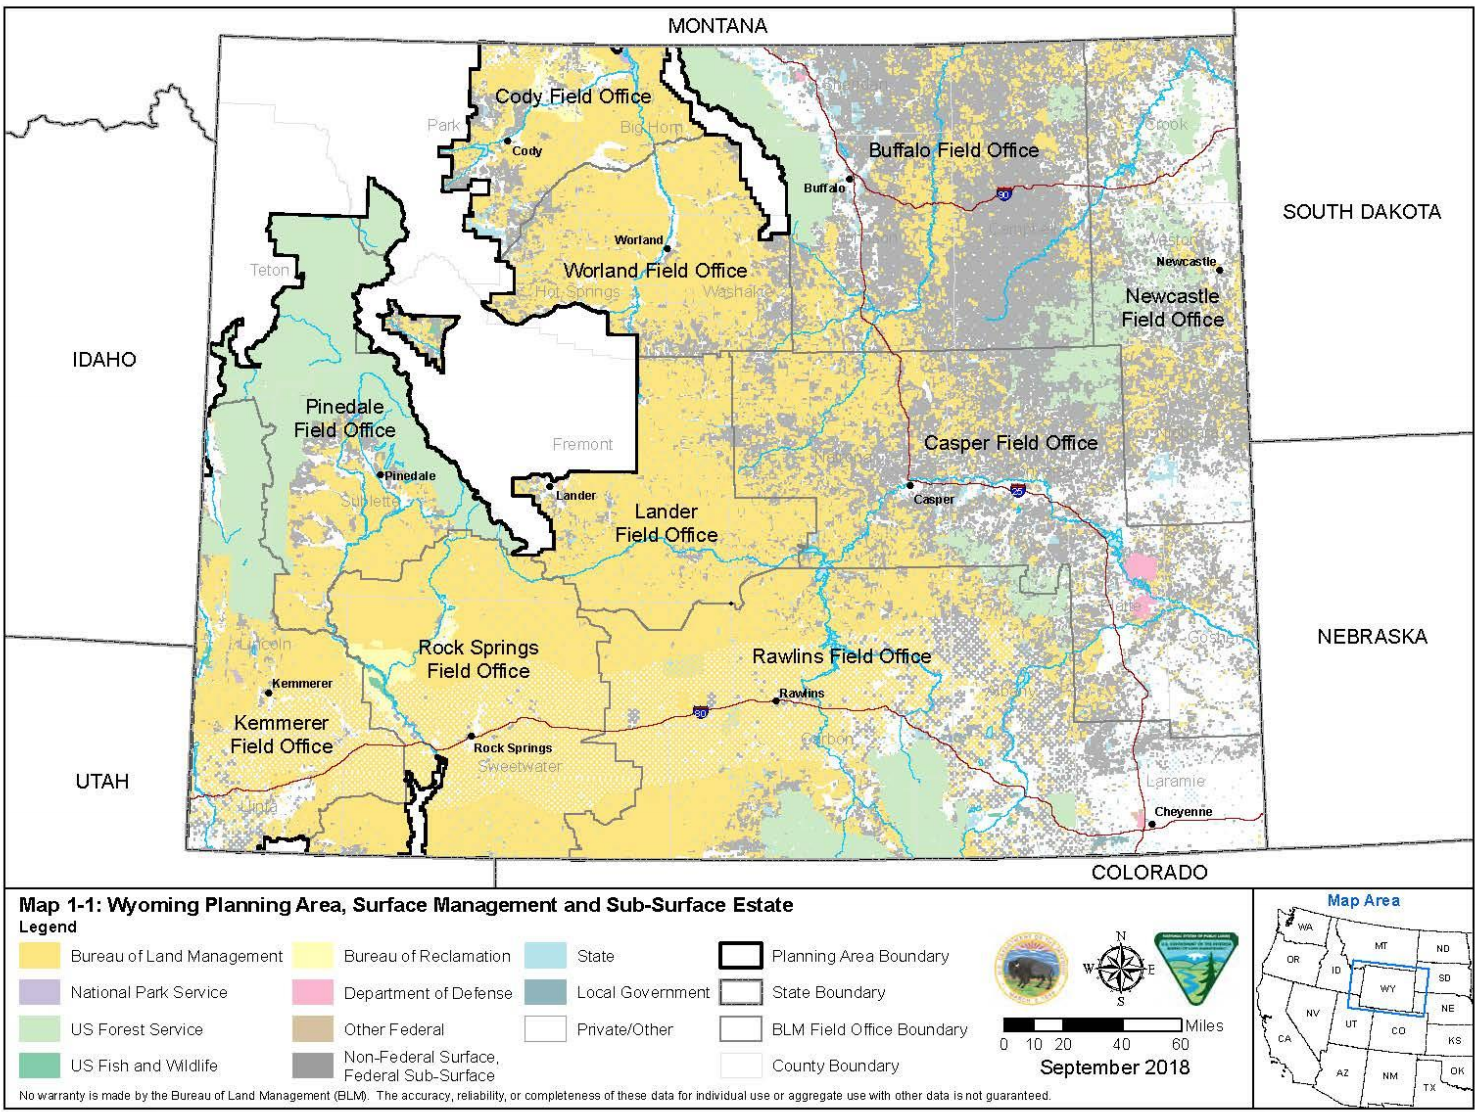 Status Quo For Sage Grouse Rules… For Now | Boise State ... on david eddings maps, lds mission maps, artistic maps, safehold series maps, classic d&d maps, high quality maps, full screen maps, bird migration maps, snowy egret maps, pennsylvania grouse hunting maps, unusual maps, ruffed grouse habitat maps, fictional maps, sage leaf, old vintage maps, star gazing maps, cartography maps, role playing maps,